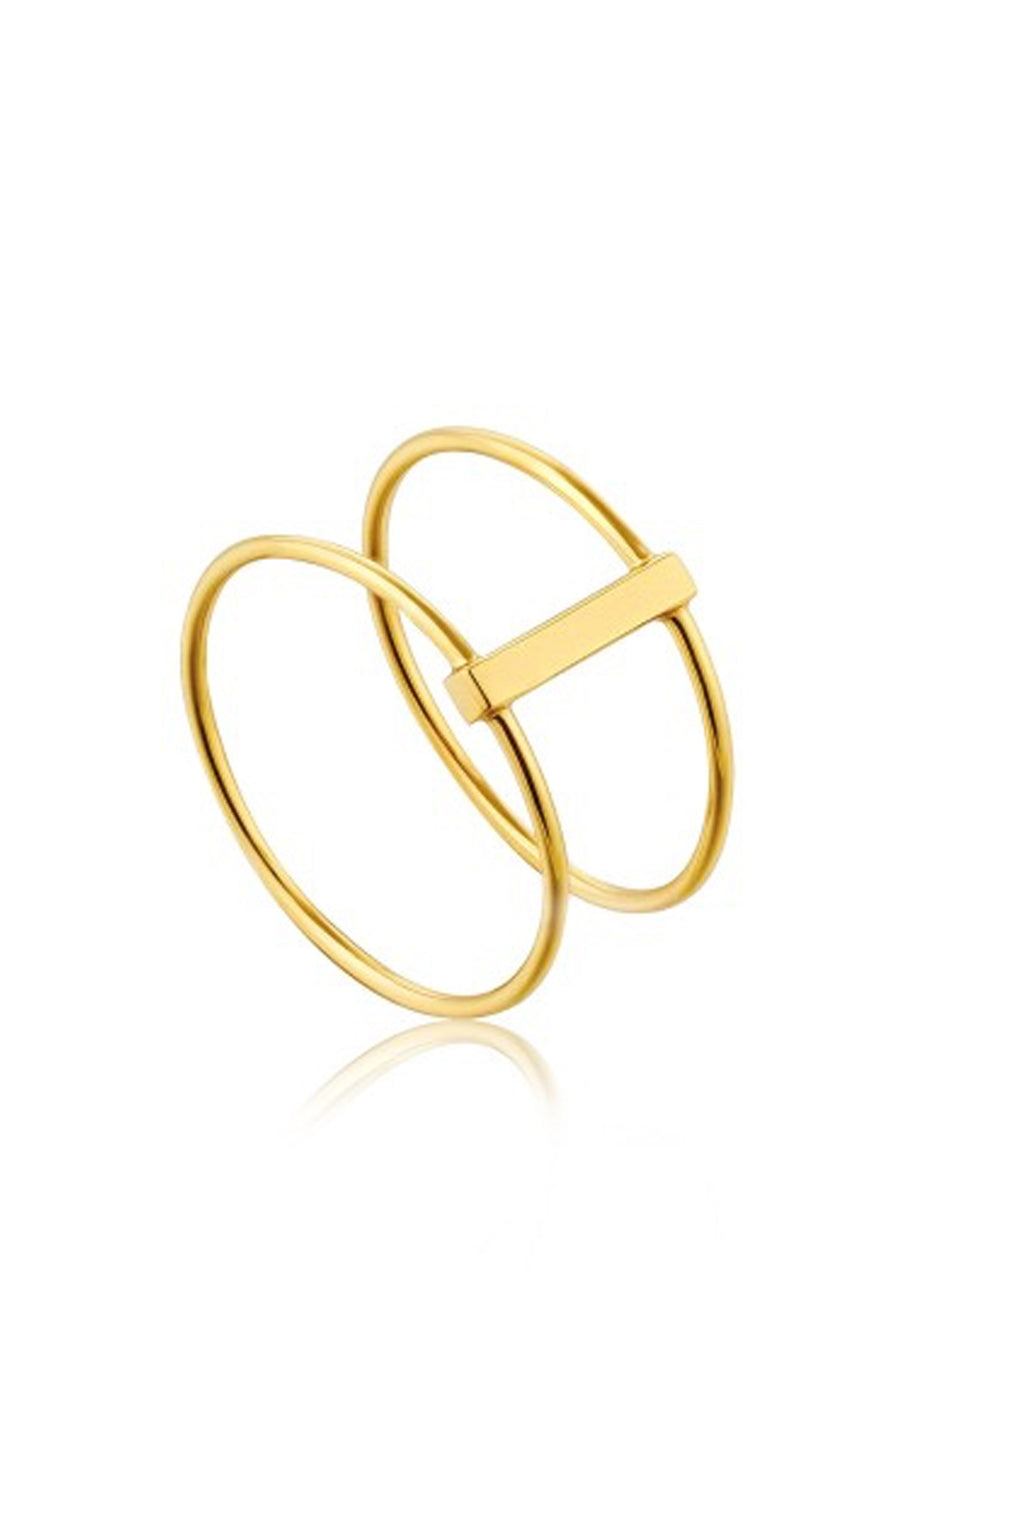 Ania Haie Modern Double Ring - The Mercantile London